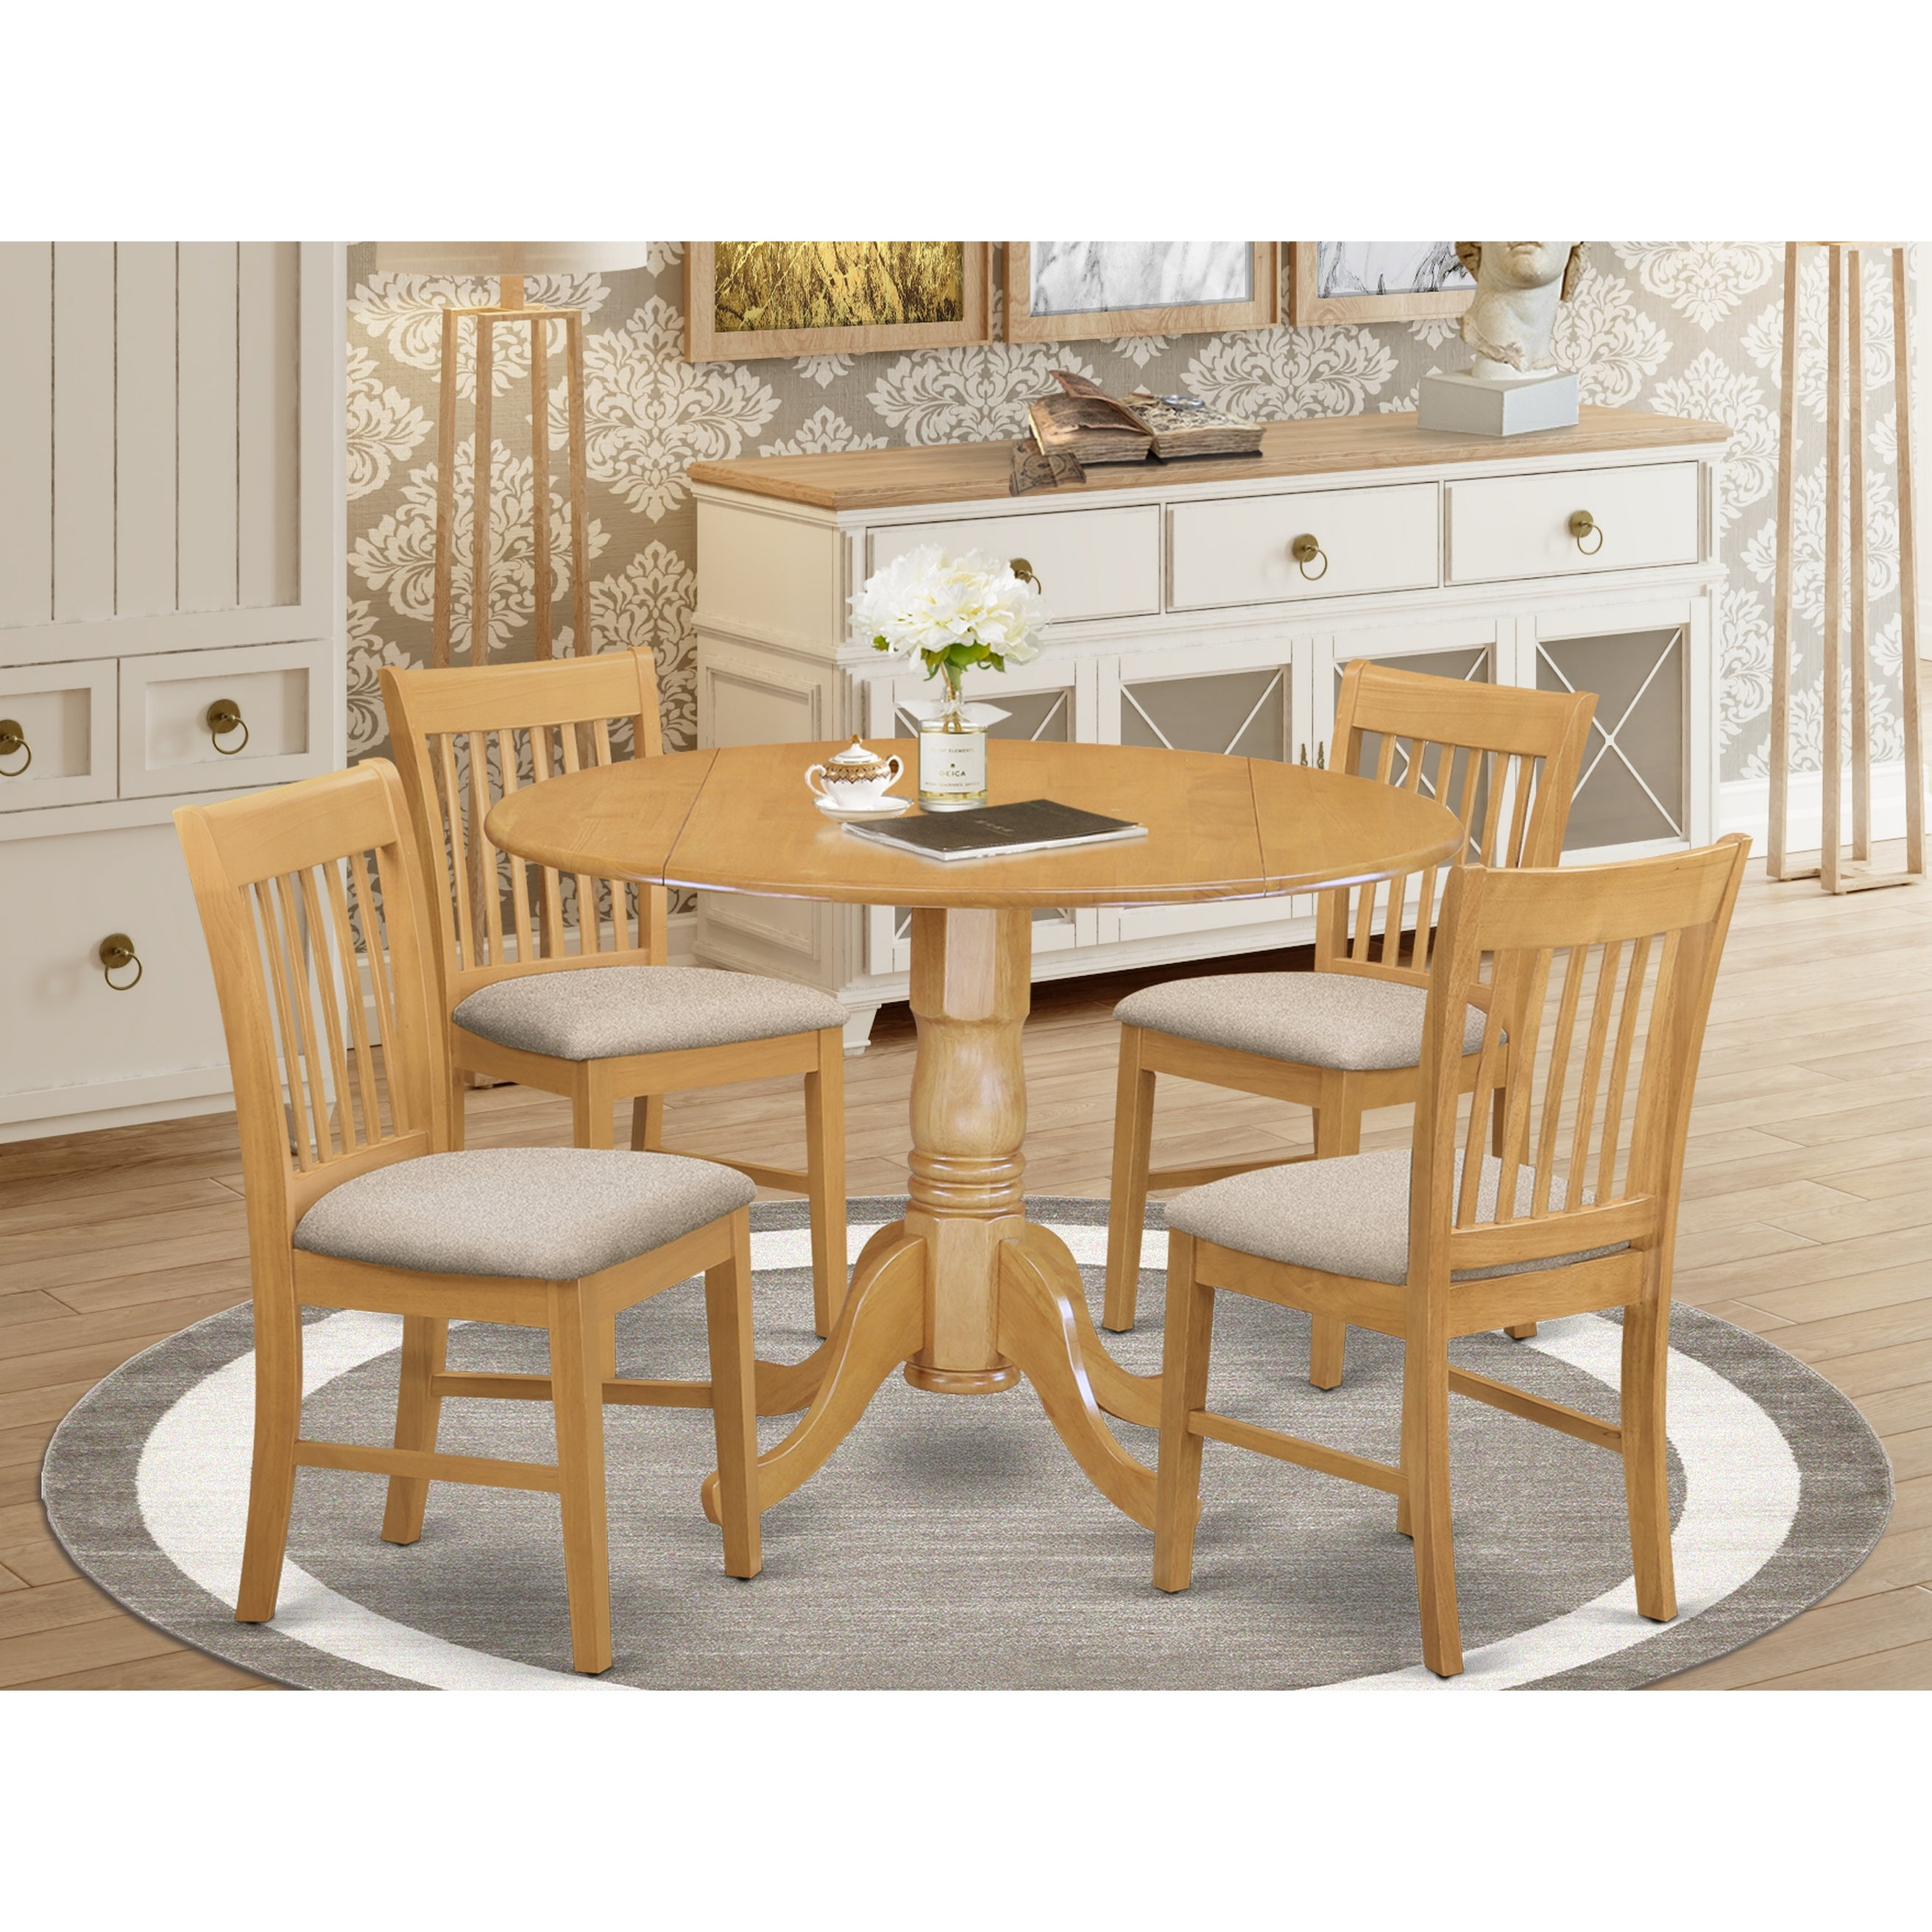 Oak Round Kitchen Table and 10 Chairs 10-piece Dining Set